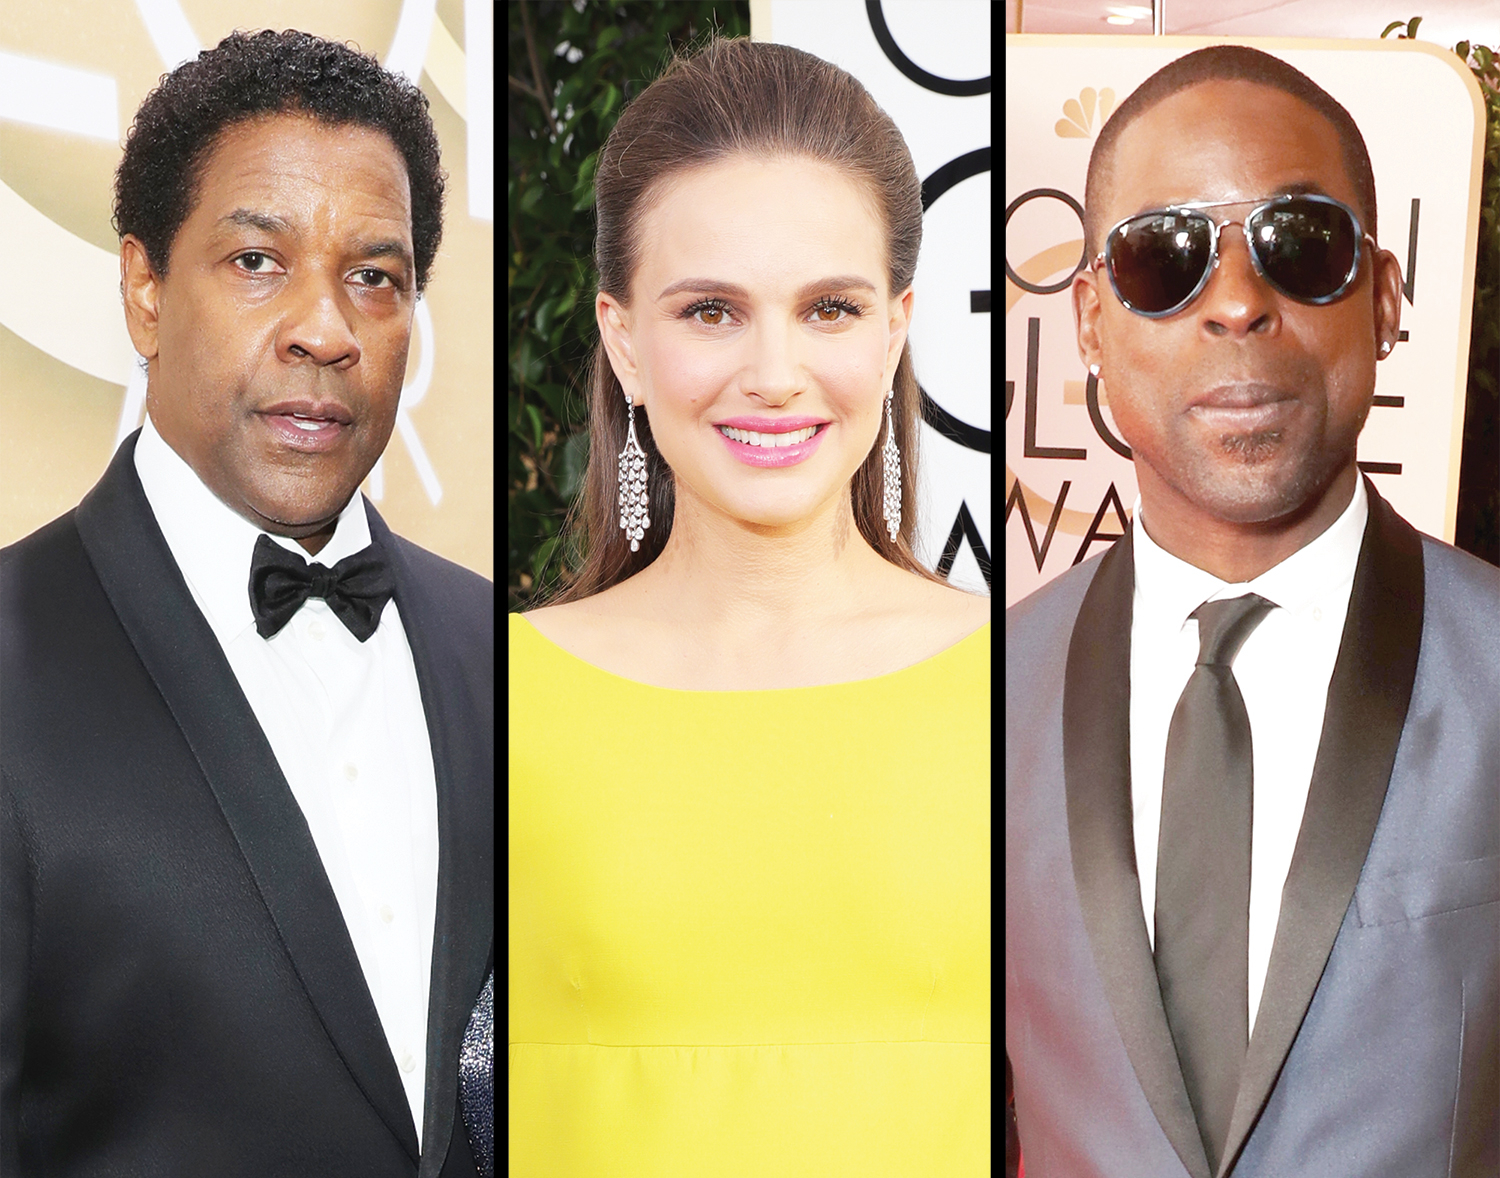 Denzel Washington, Natalie Portman and Sterling K. Brown